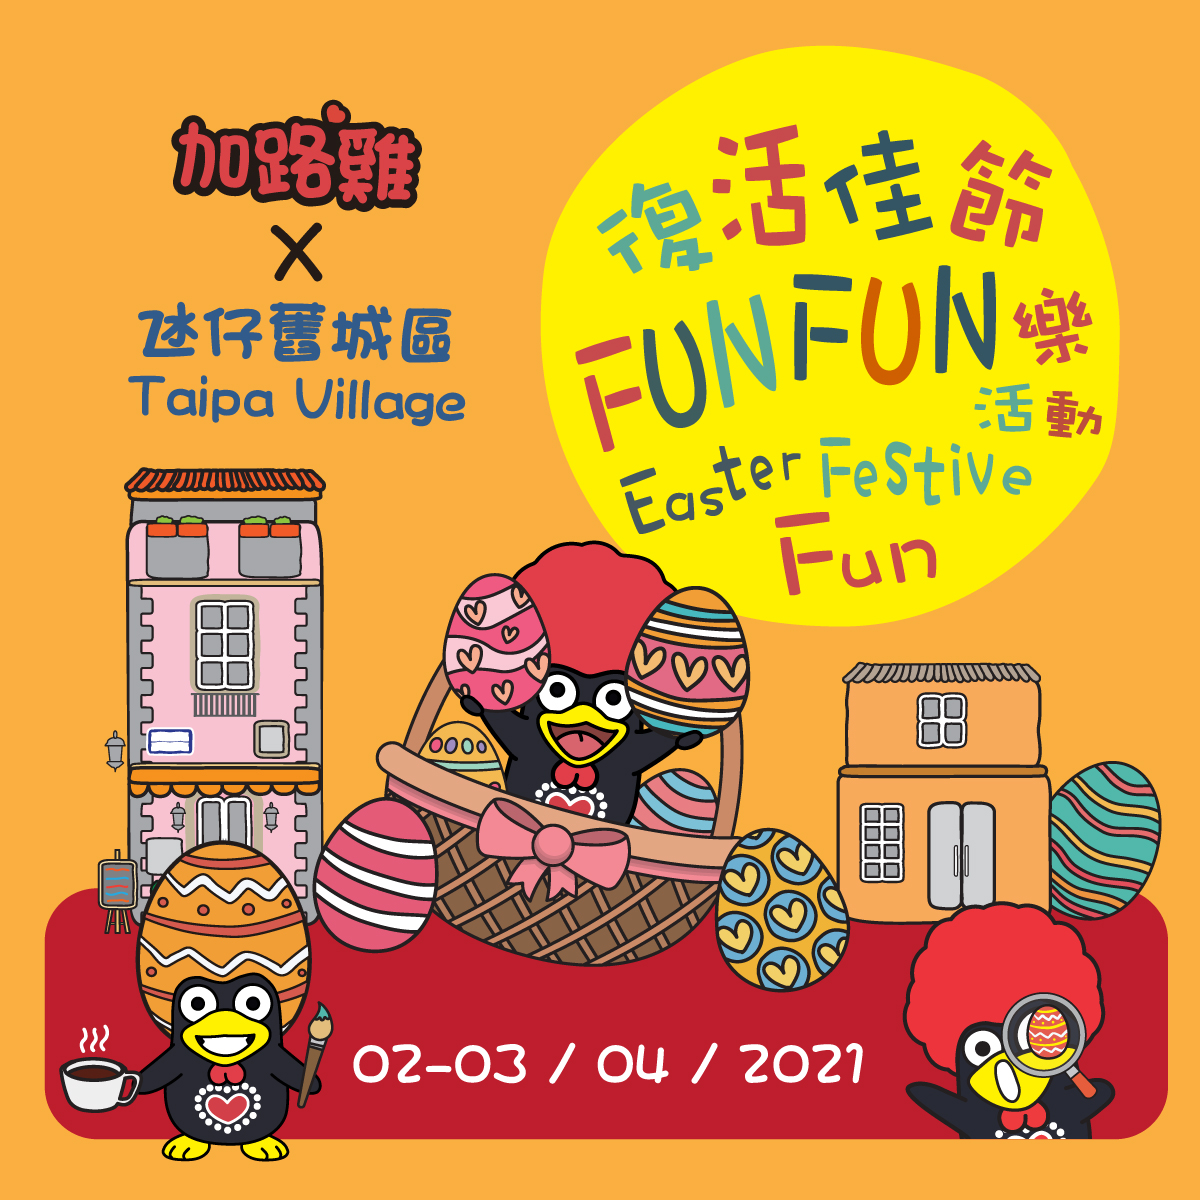 Taipa Village Easter Poster Event